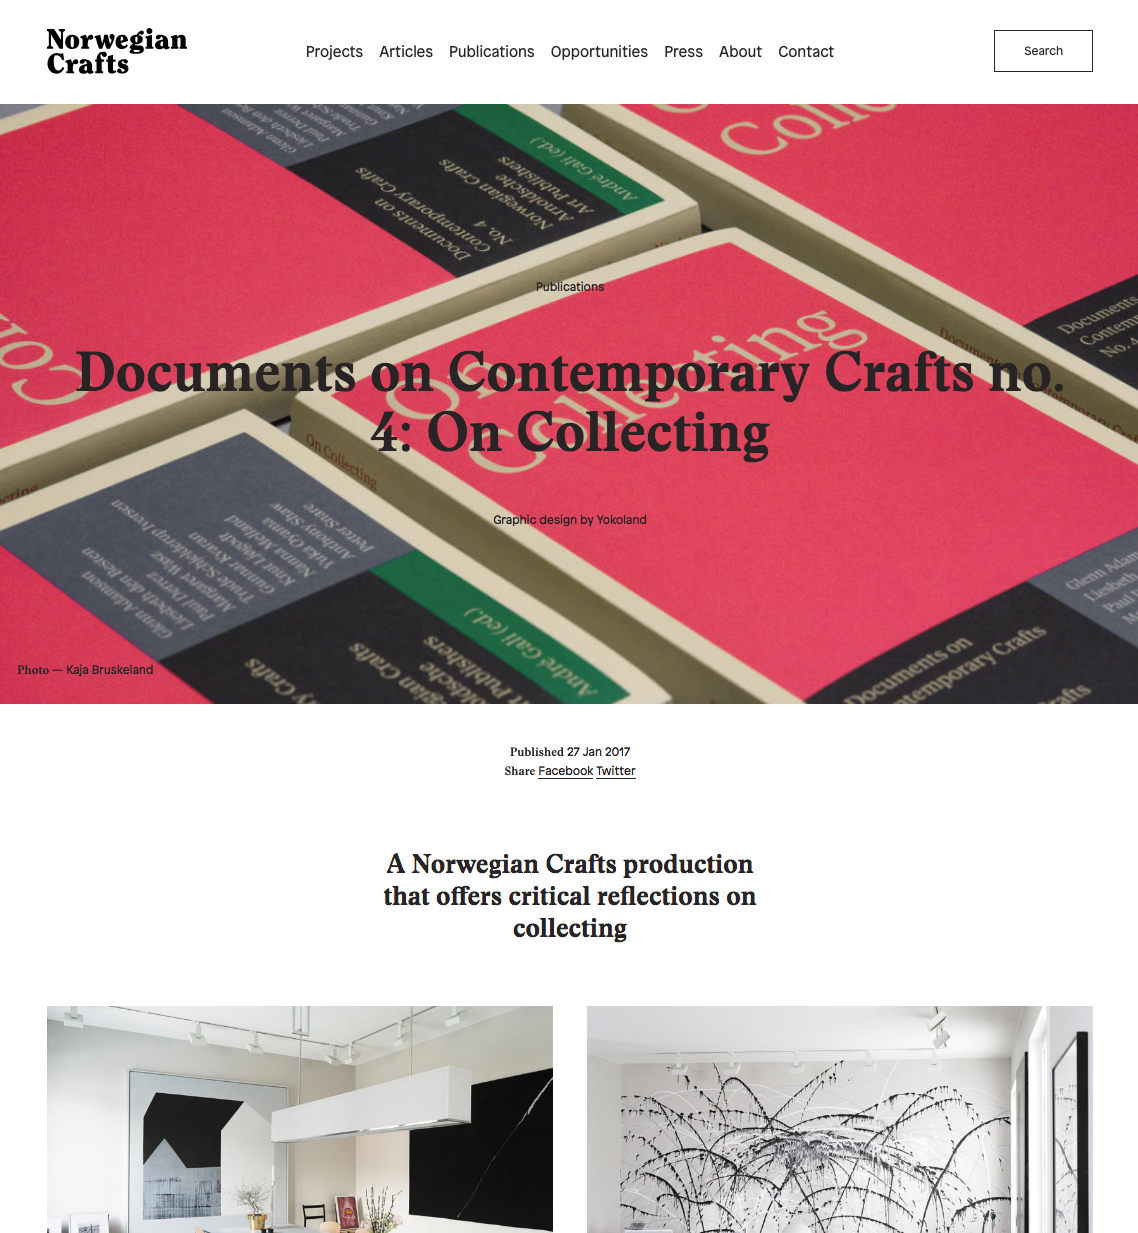 Norwegian Craft: Documents on Contemporary Crafts no. 4: On Collecting